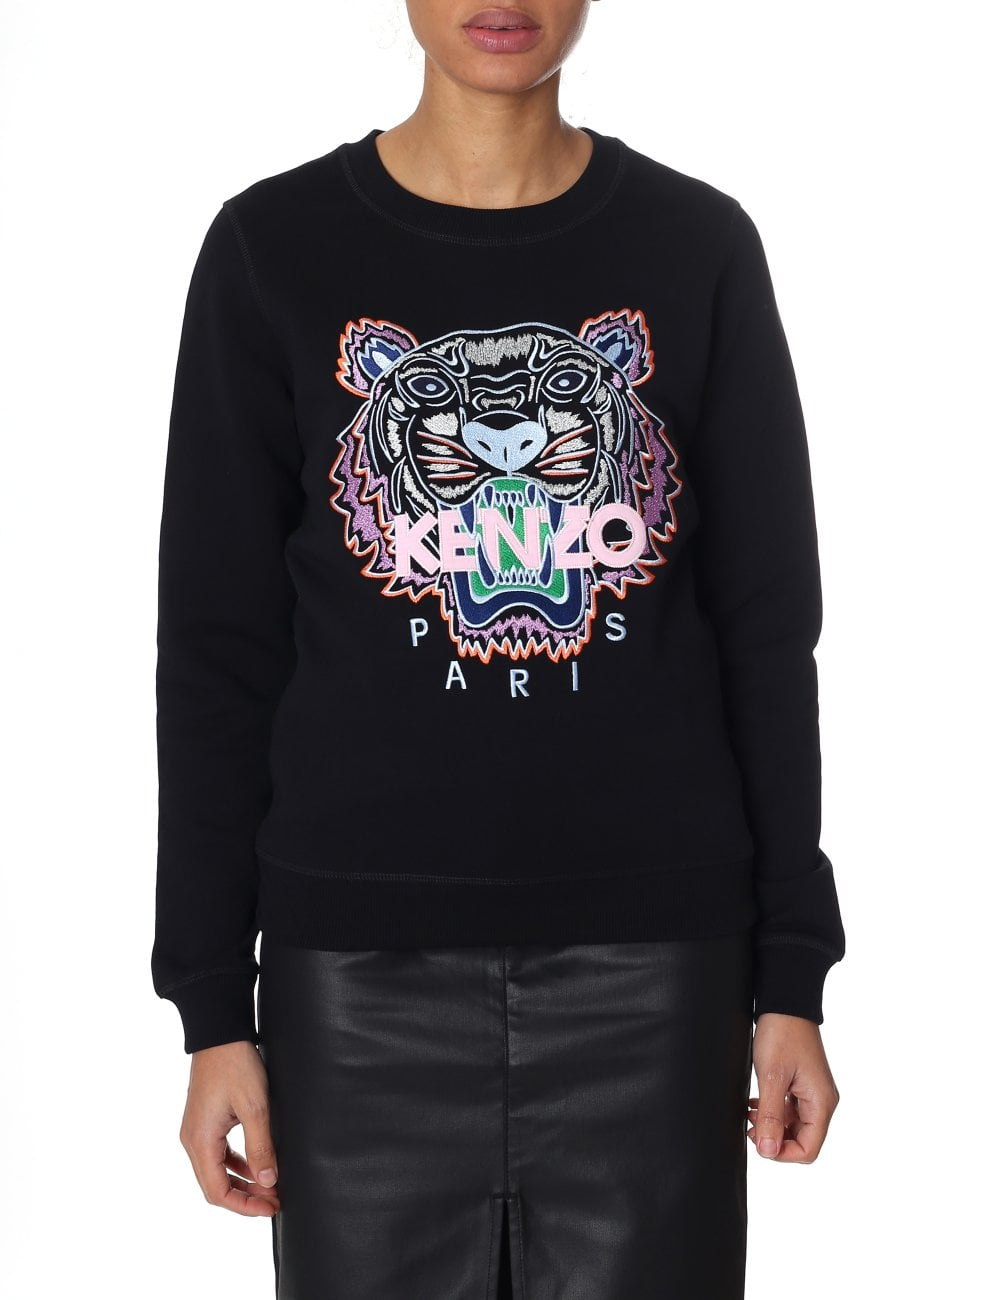 39bc62c0be0f Kenzo Women's Long Sleeve Tiger Sweatshirt